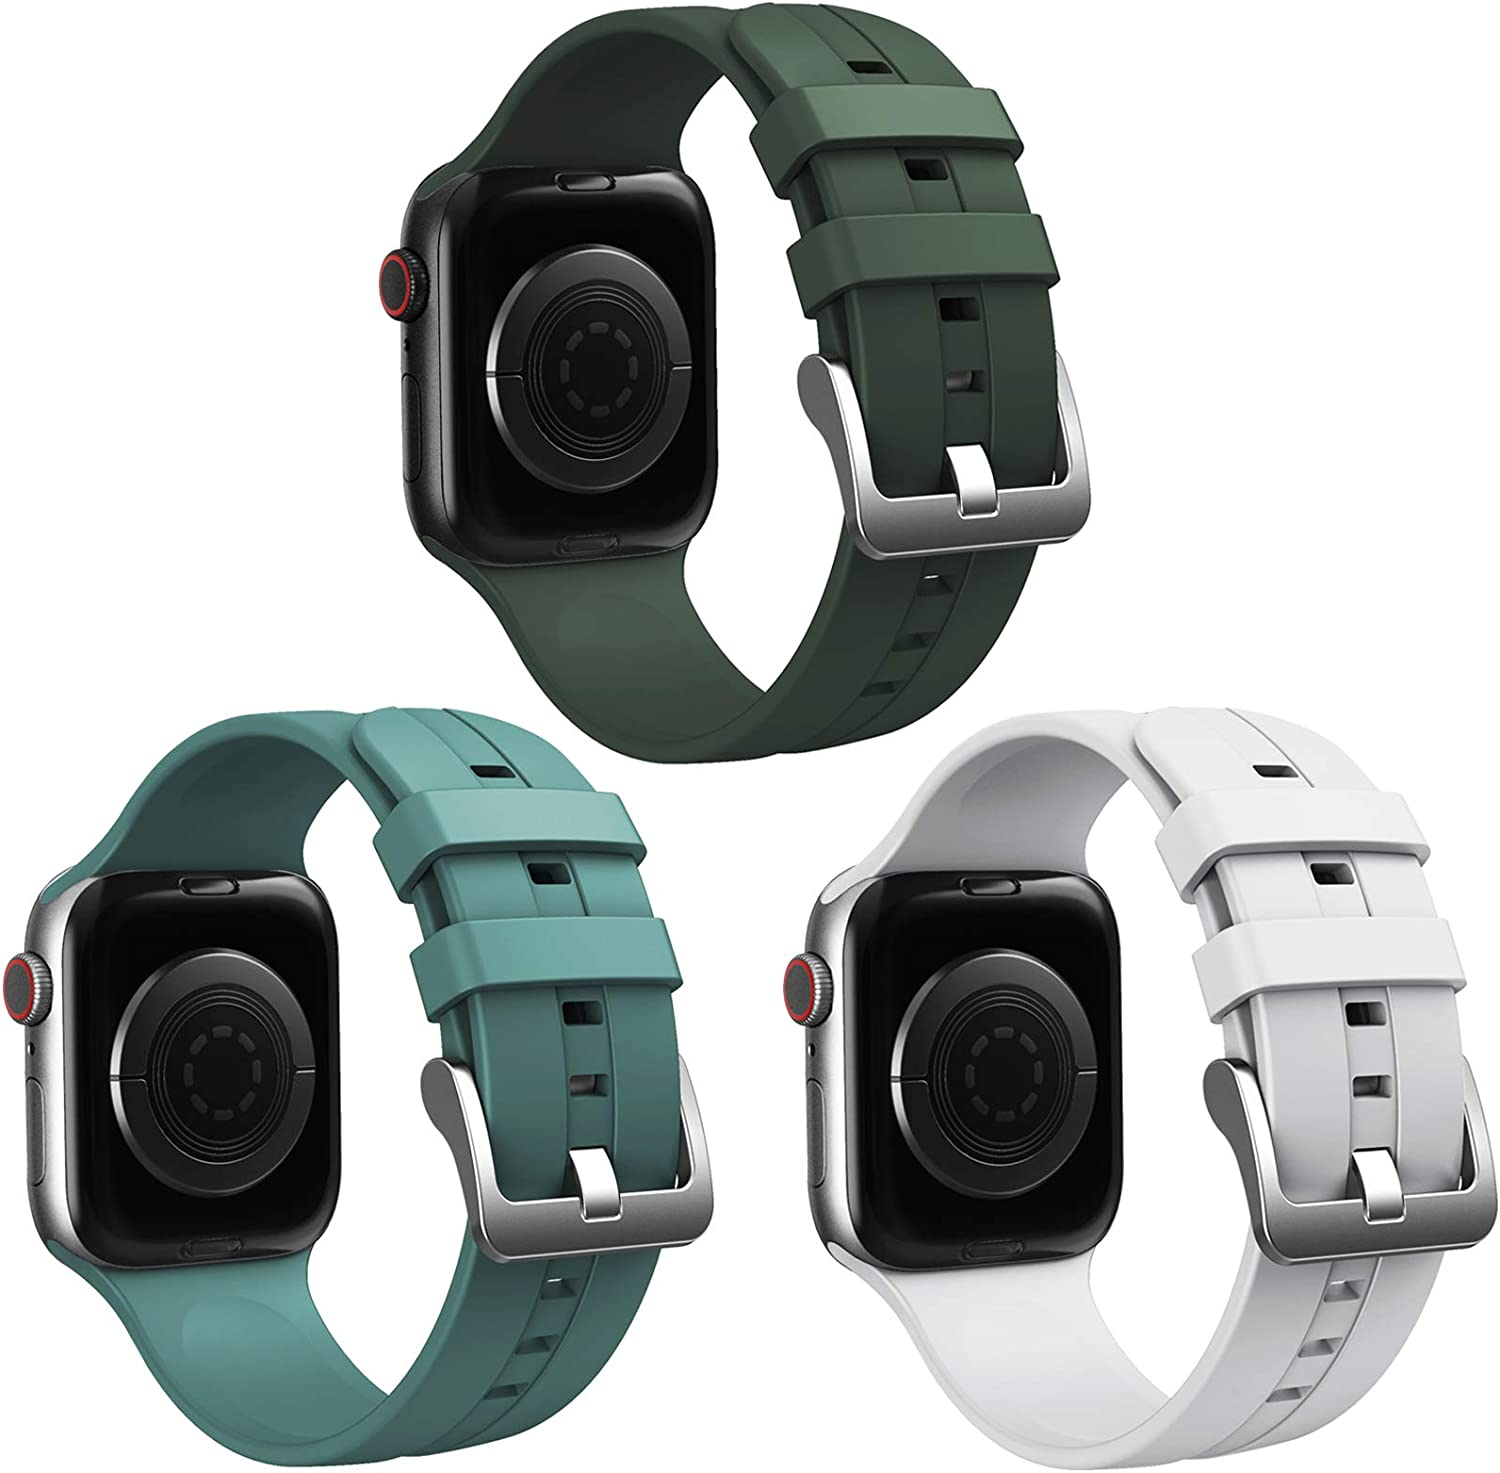 Honsdom Compatible with Apple Watch Bands 44mm 42mm 40mm 38mm for Women Men, Soft Silicone Sport Wristbands Replacement Strap for iWatch SE Series 6 5 4 3 2 1 (3Pack-Cactus,White,Cyprus Green)